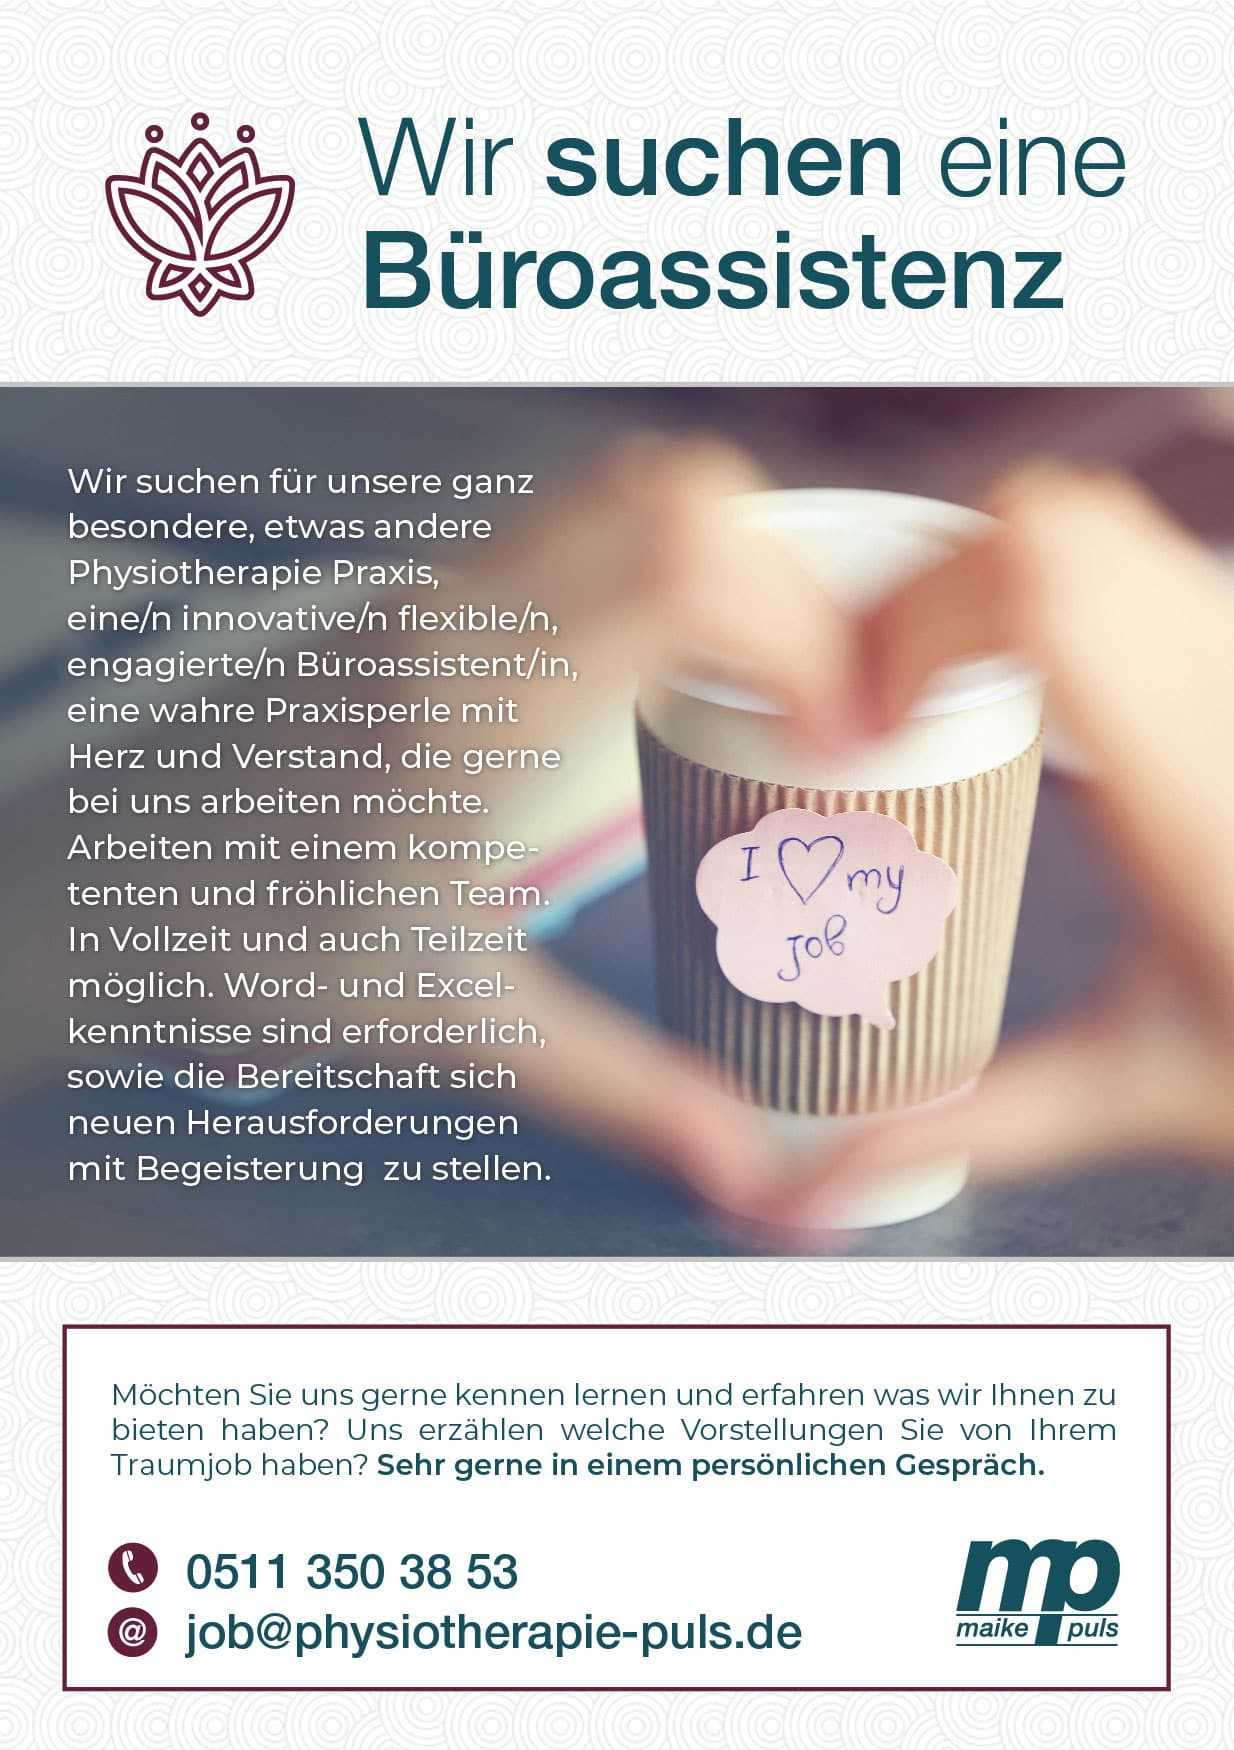 Jobs in Hannover in unserer Physiotherapie Praxis